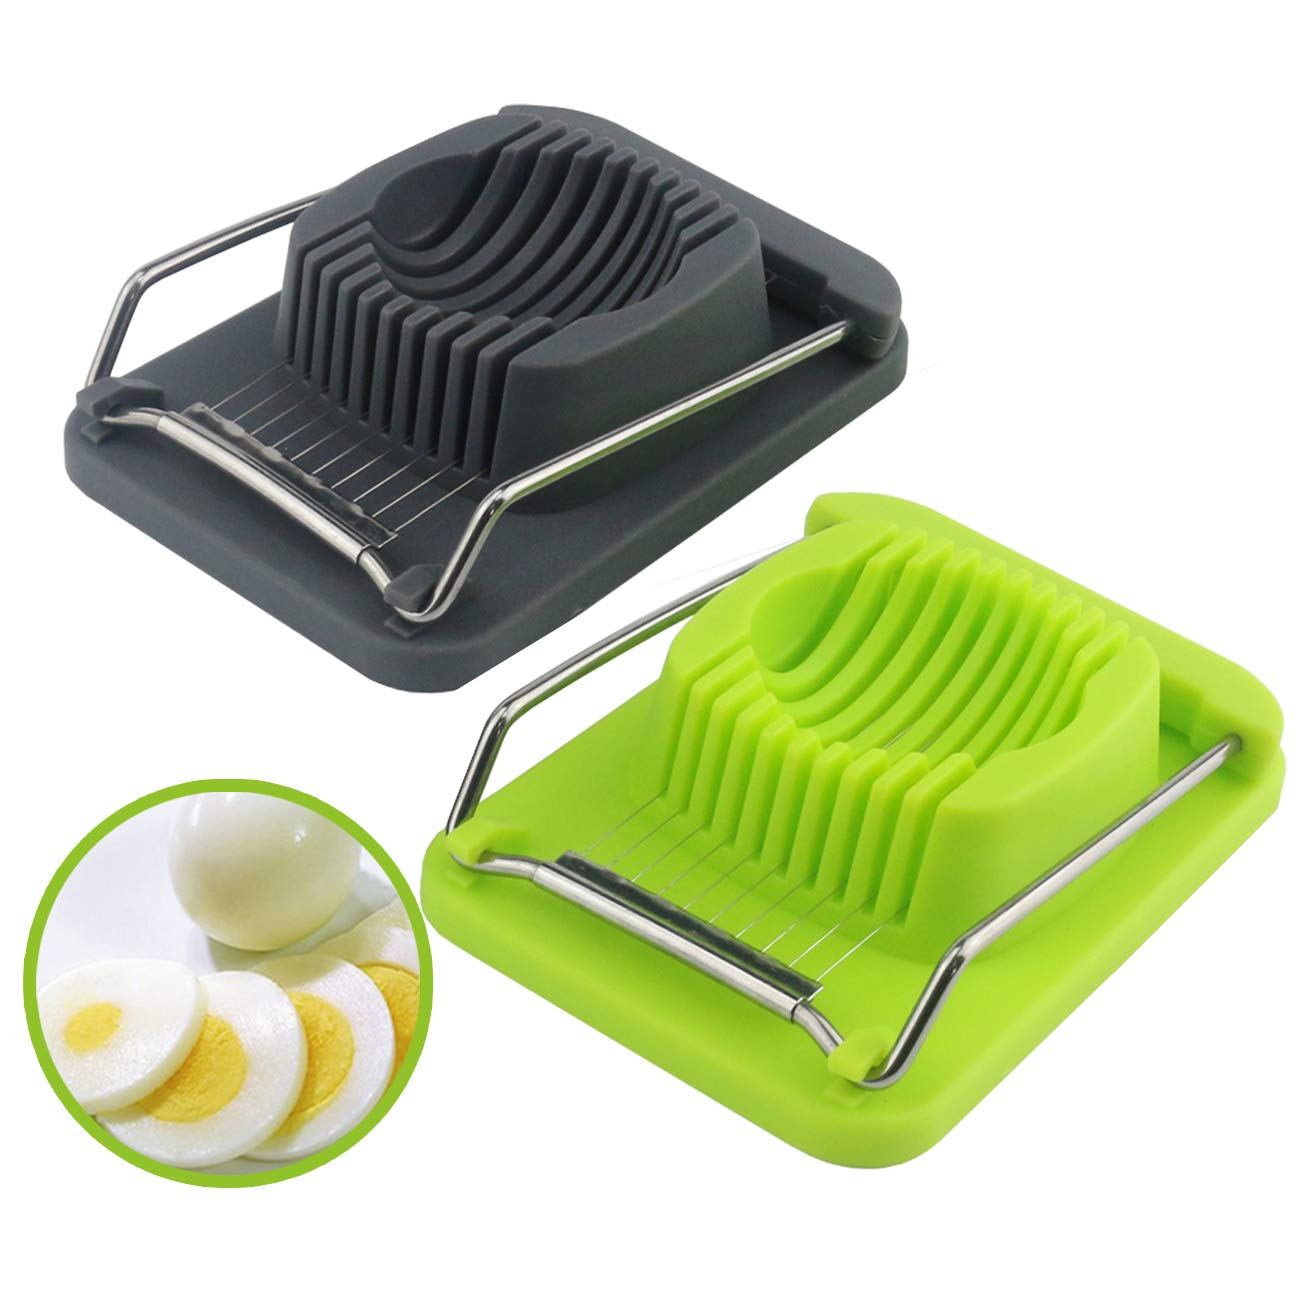 TinaWood 2PCS Egg Slicer/Boiled Eggs Cutter/ Stainless Steel Cutting Wiresb/ Multi Purpose Slicer for Strawberry Fruit Garnish Slicer (Green and Grey) ES-2